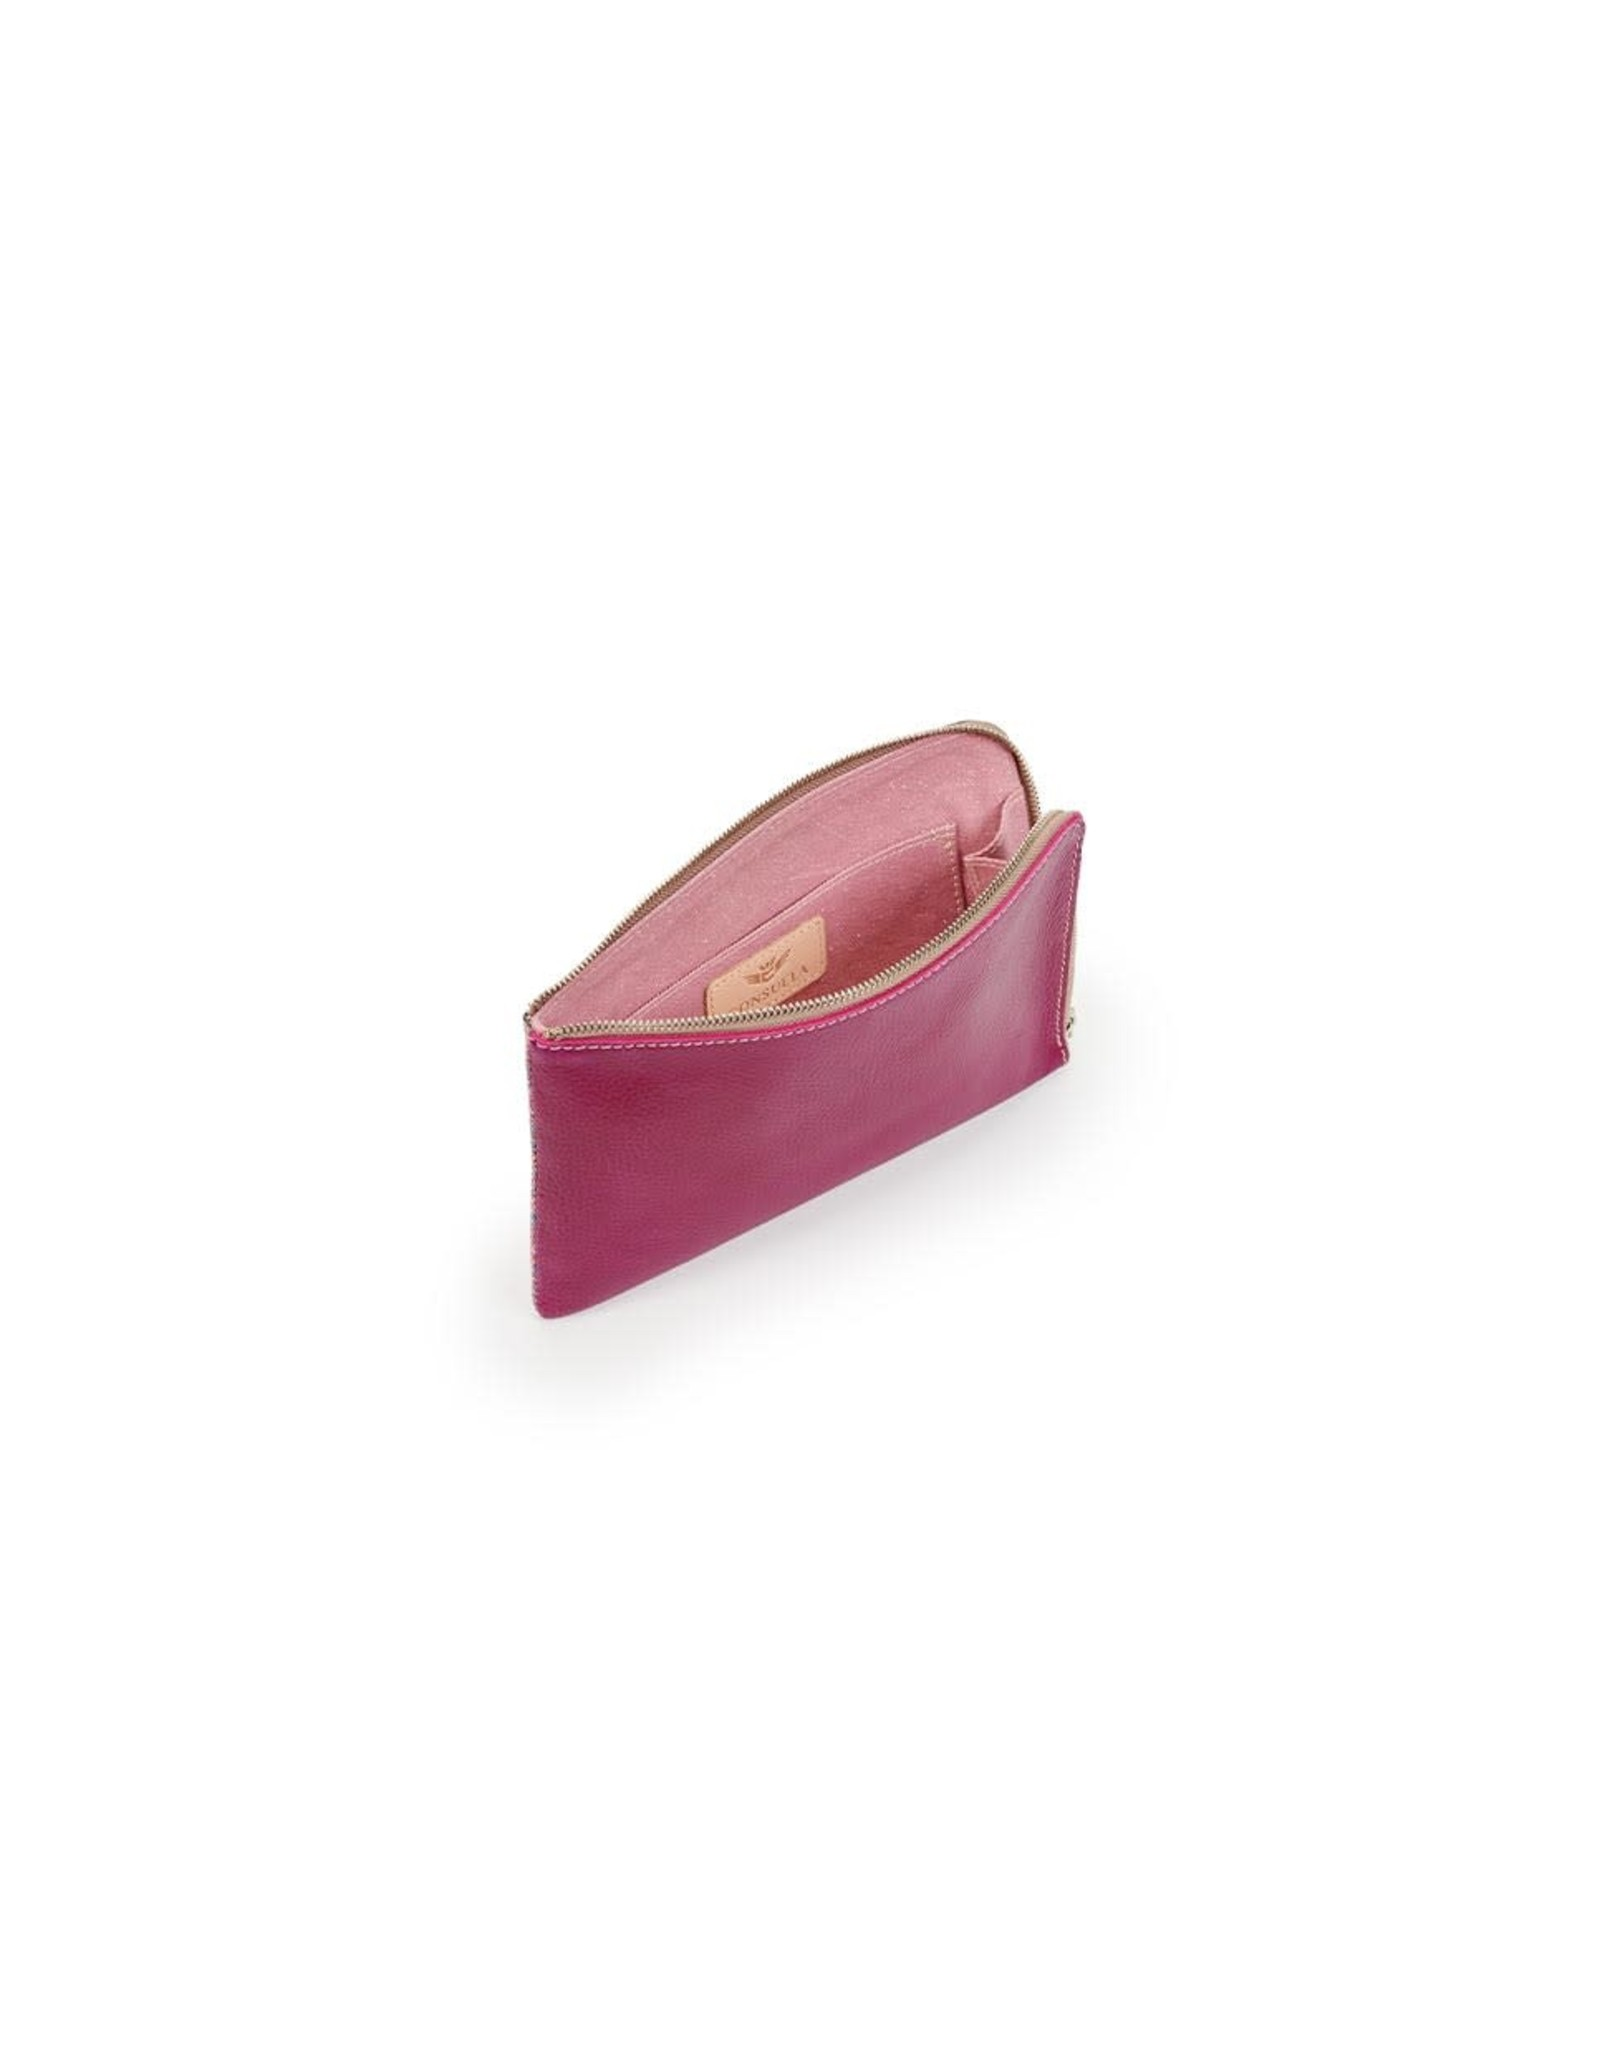 L-Shaped Clutch Raspberry Beret